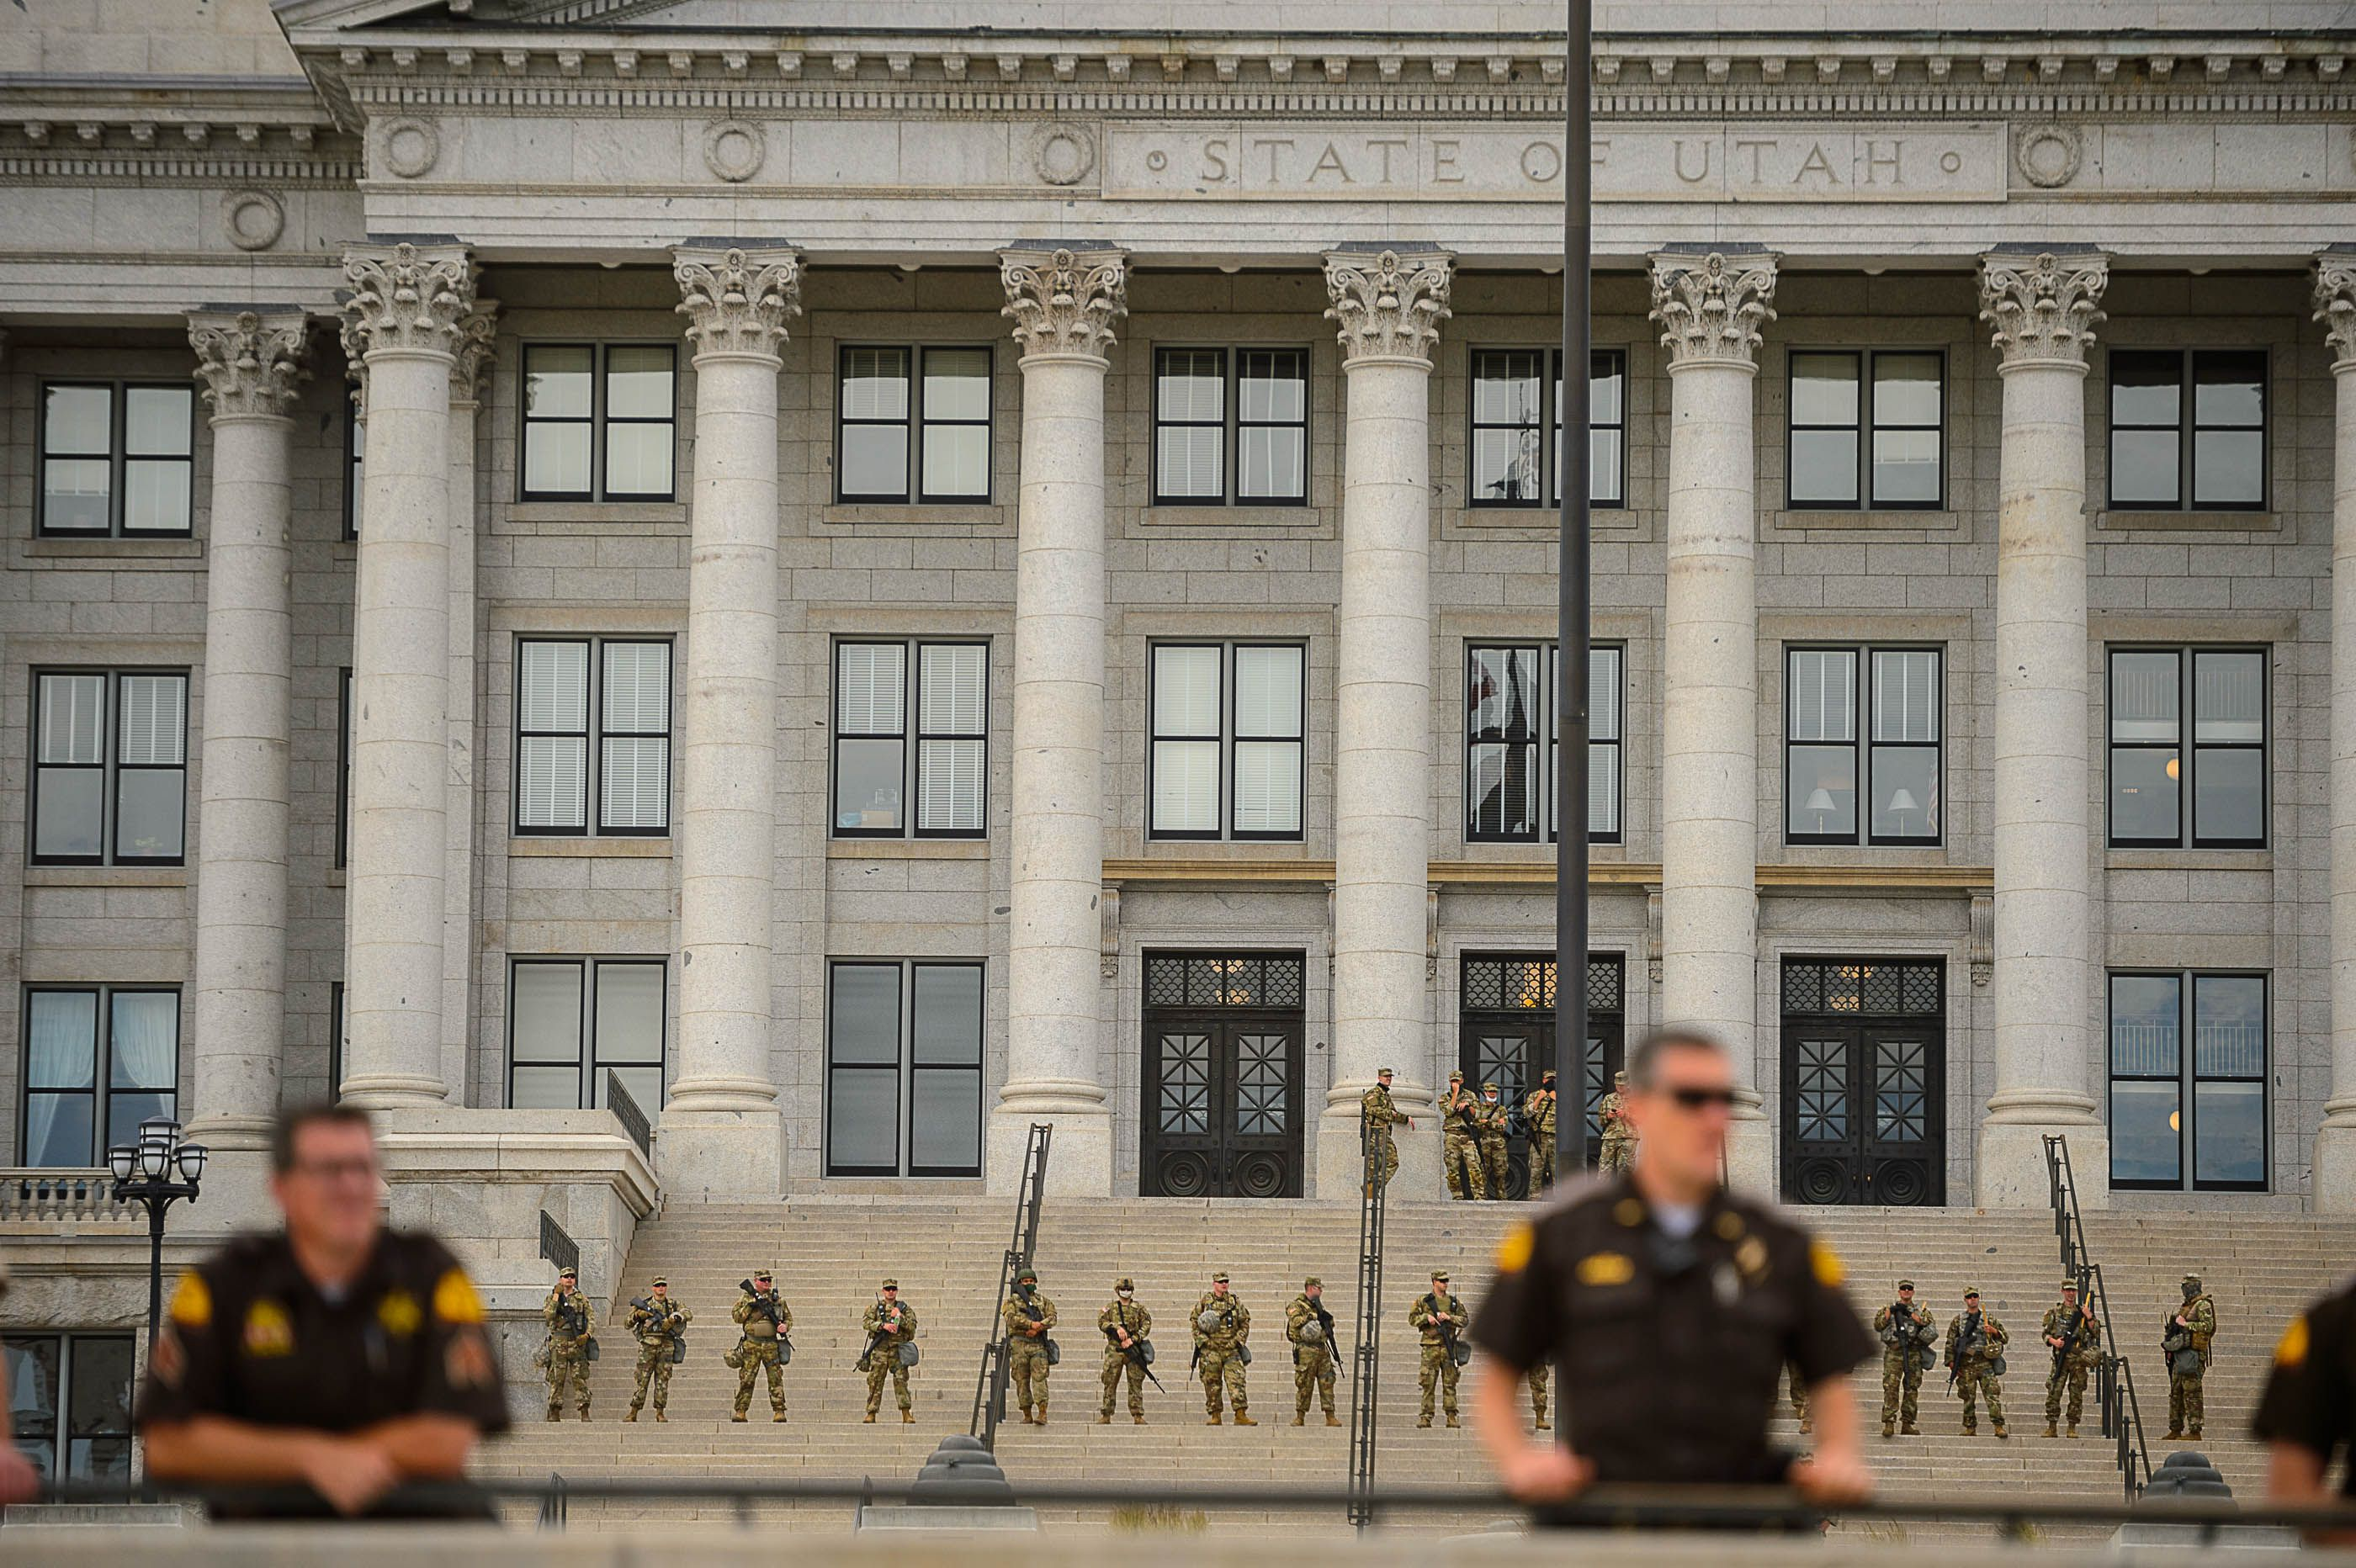 (Trent Nelson  |  The Salt Lake Tribune) Police stand by as protesters rally against police brutality in Salt Lake City on Thursday, June 4, 2020.